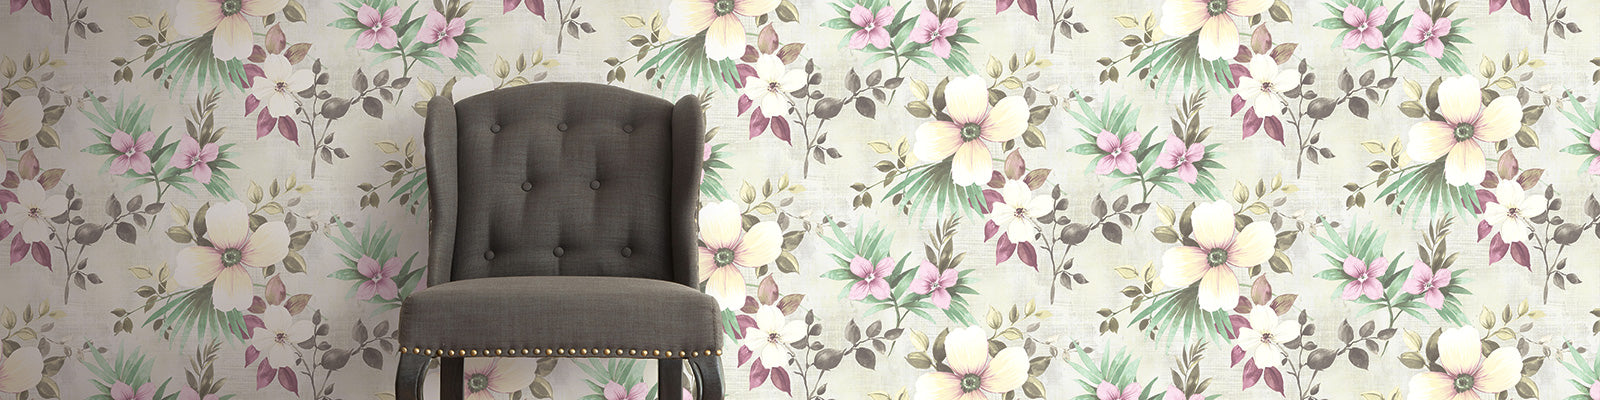 bold floral wallpaper